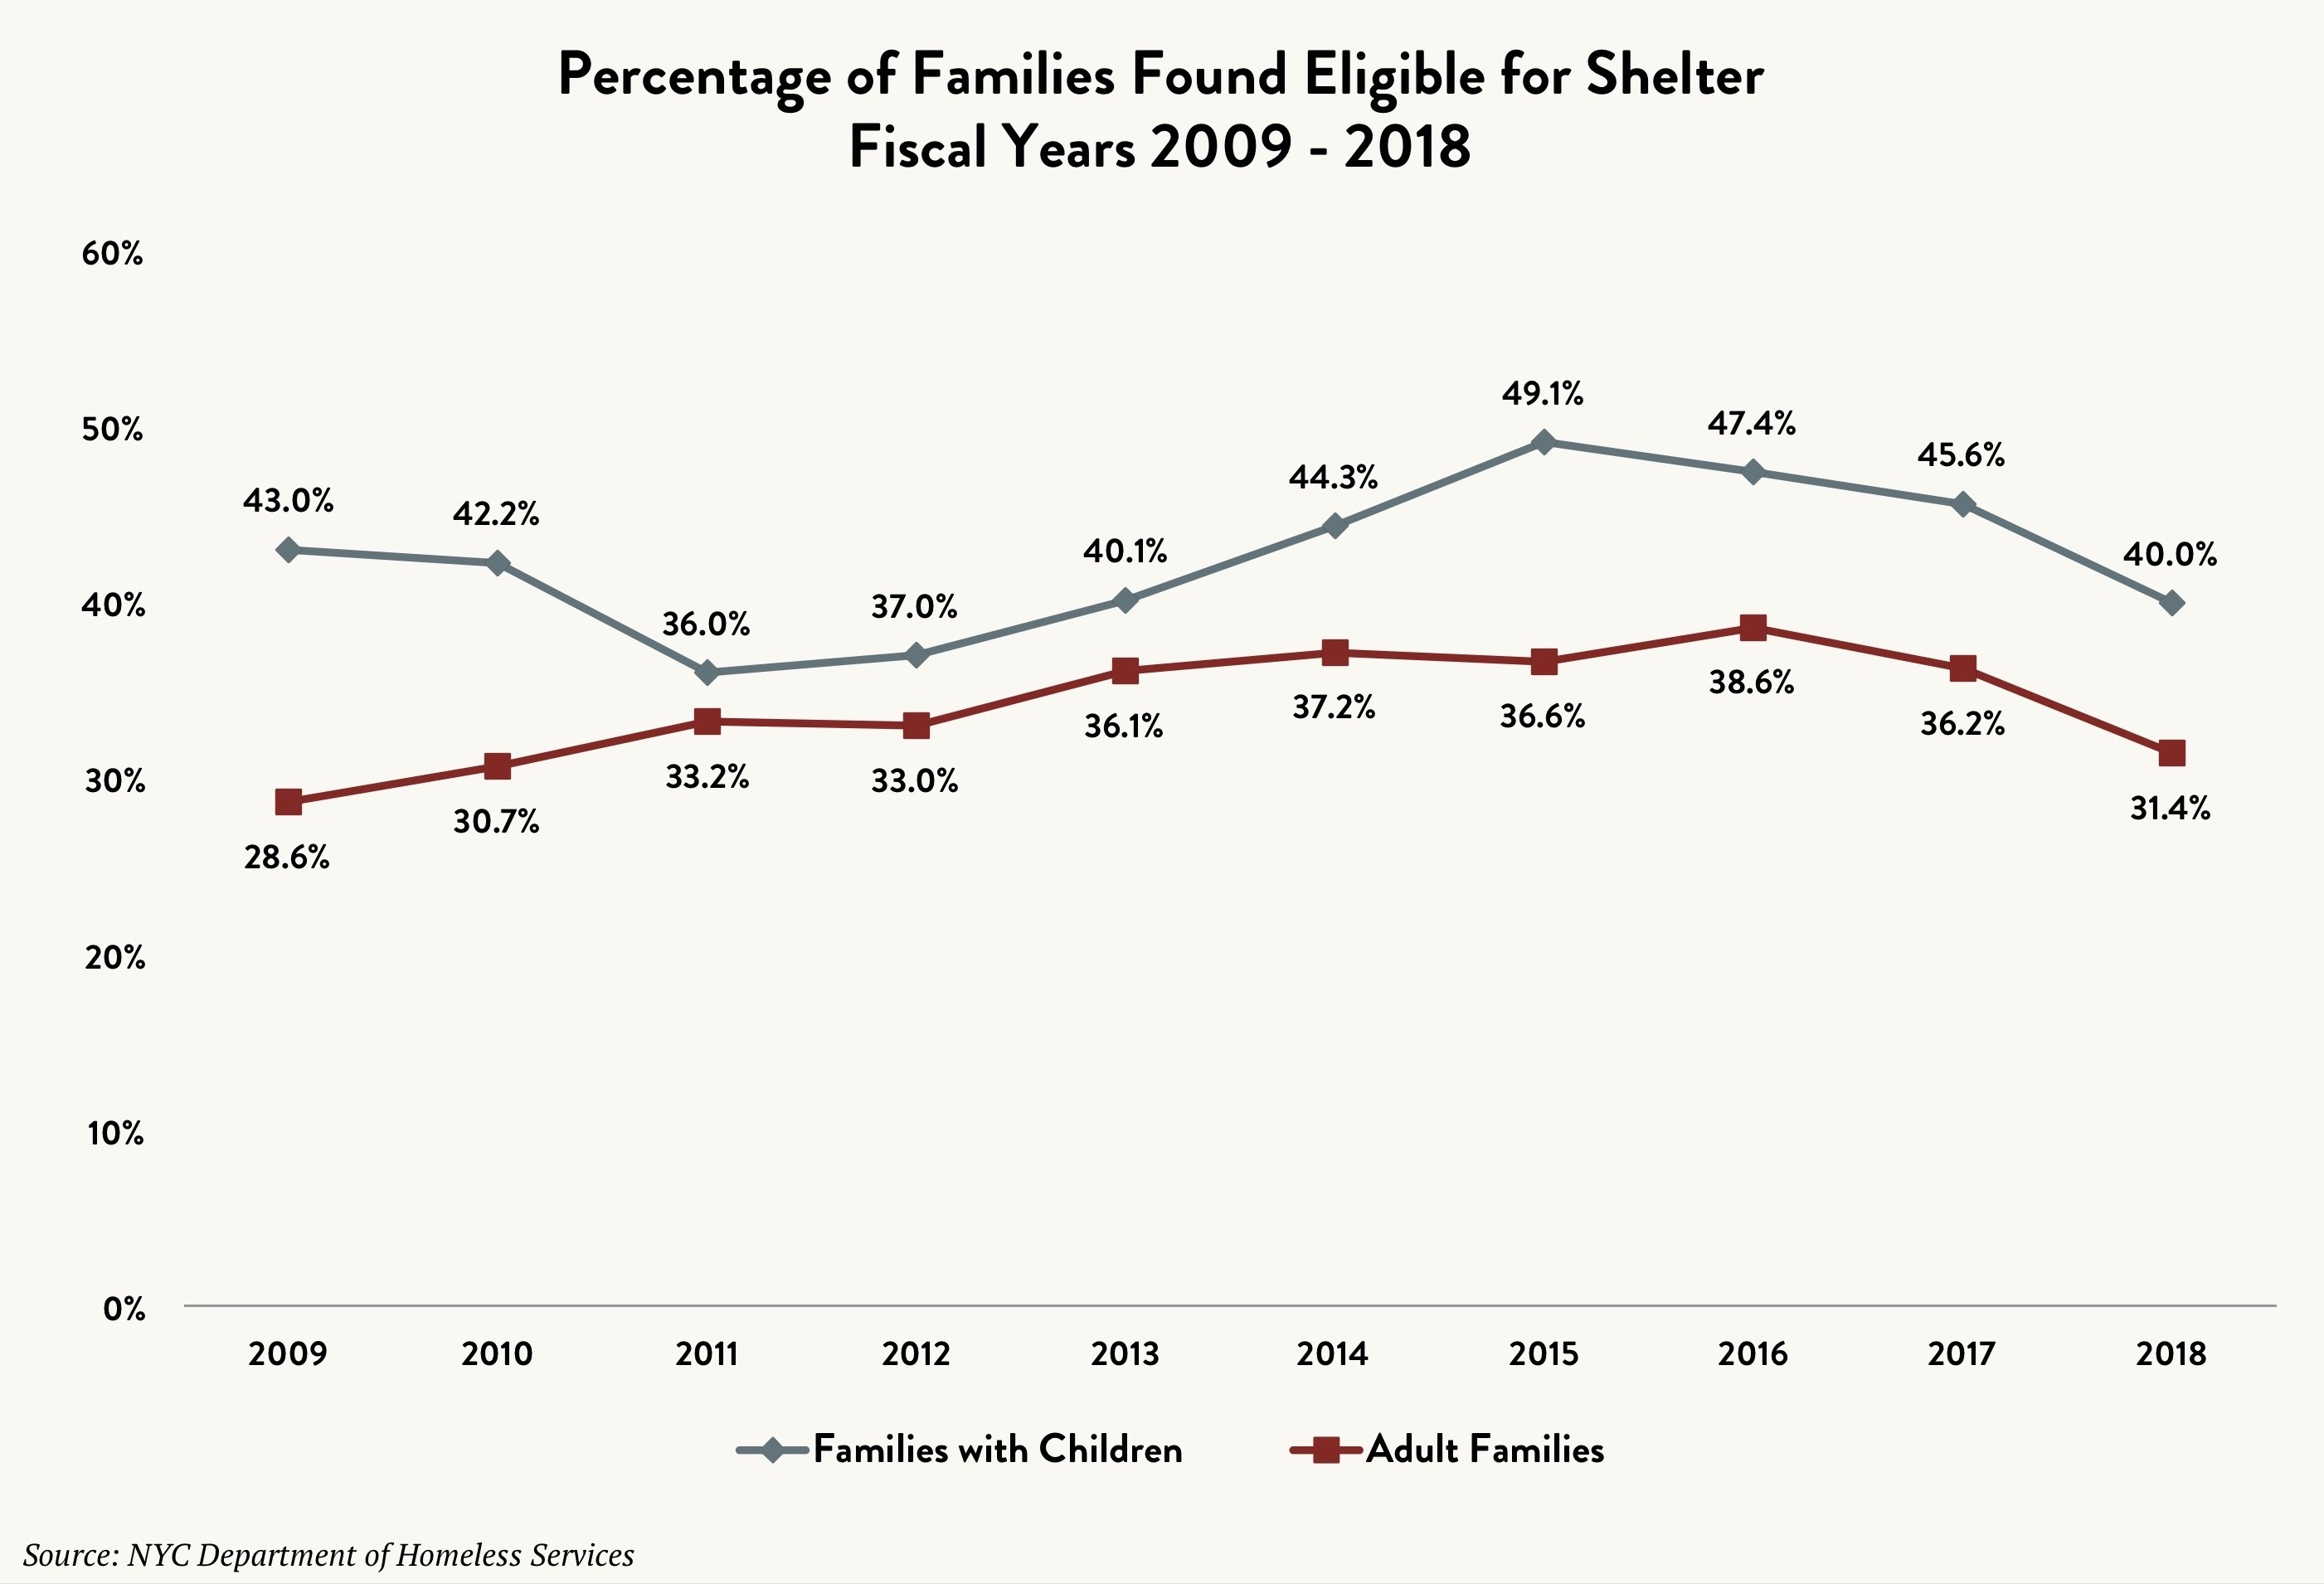 Stacked line graph comparing the percentage of families – with children and adult families – found eligible for shelter between fiscal years 2009 and 2018